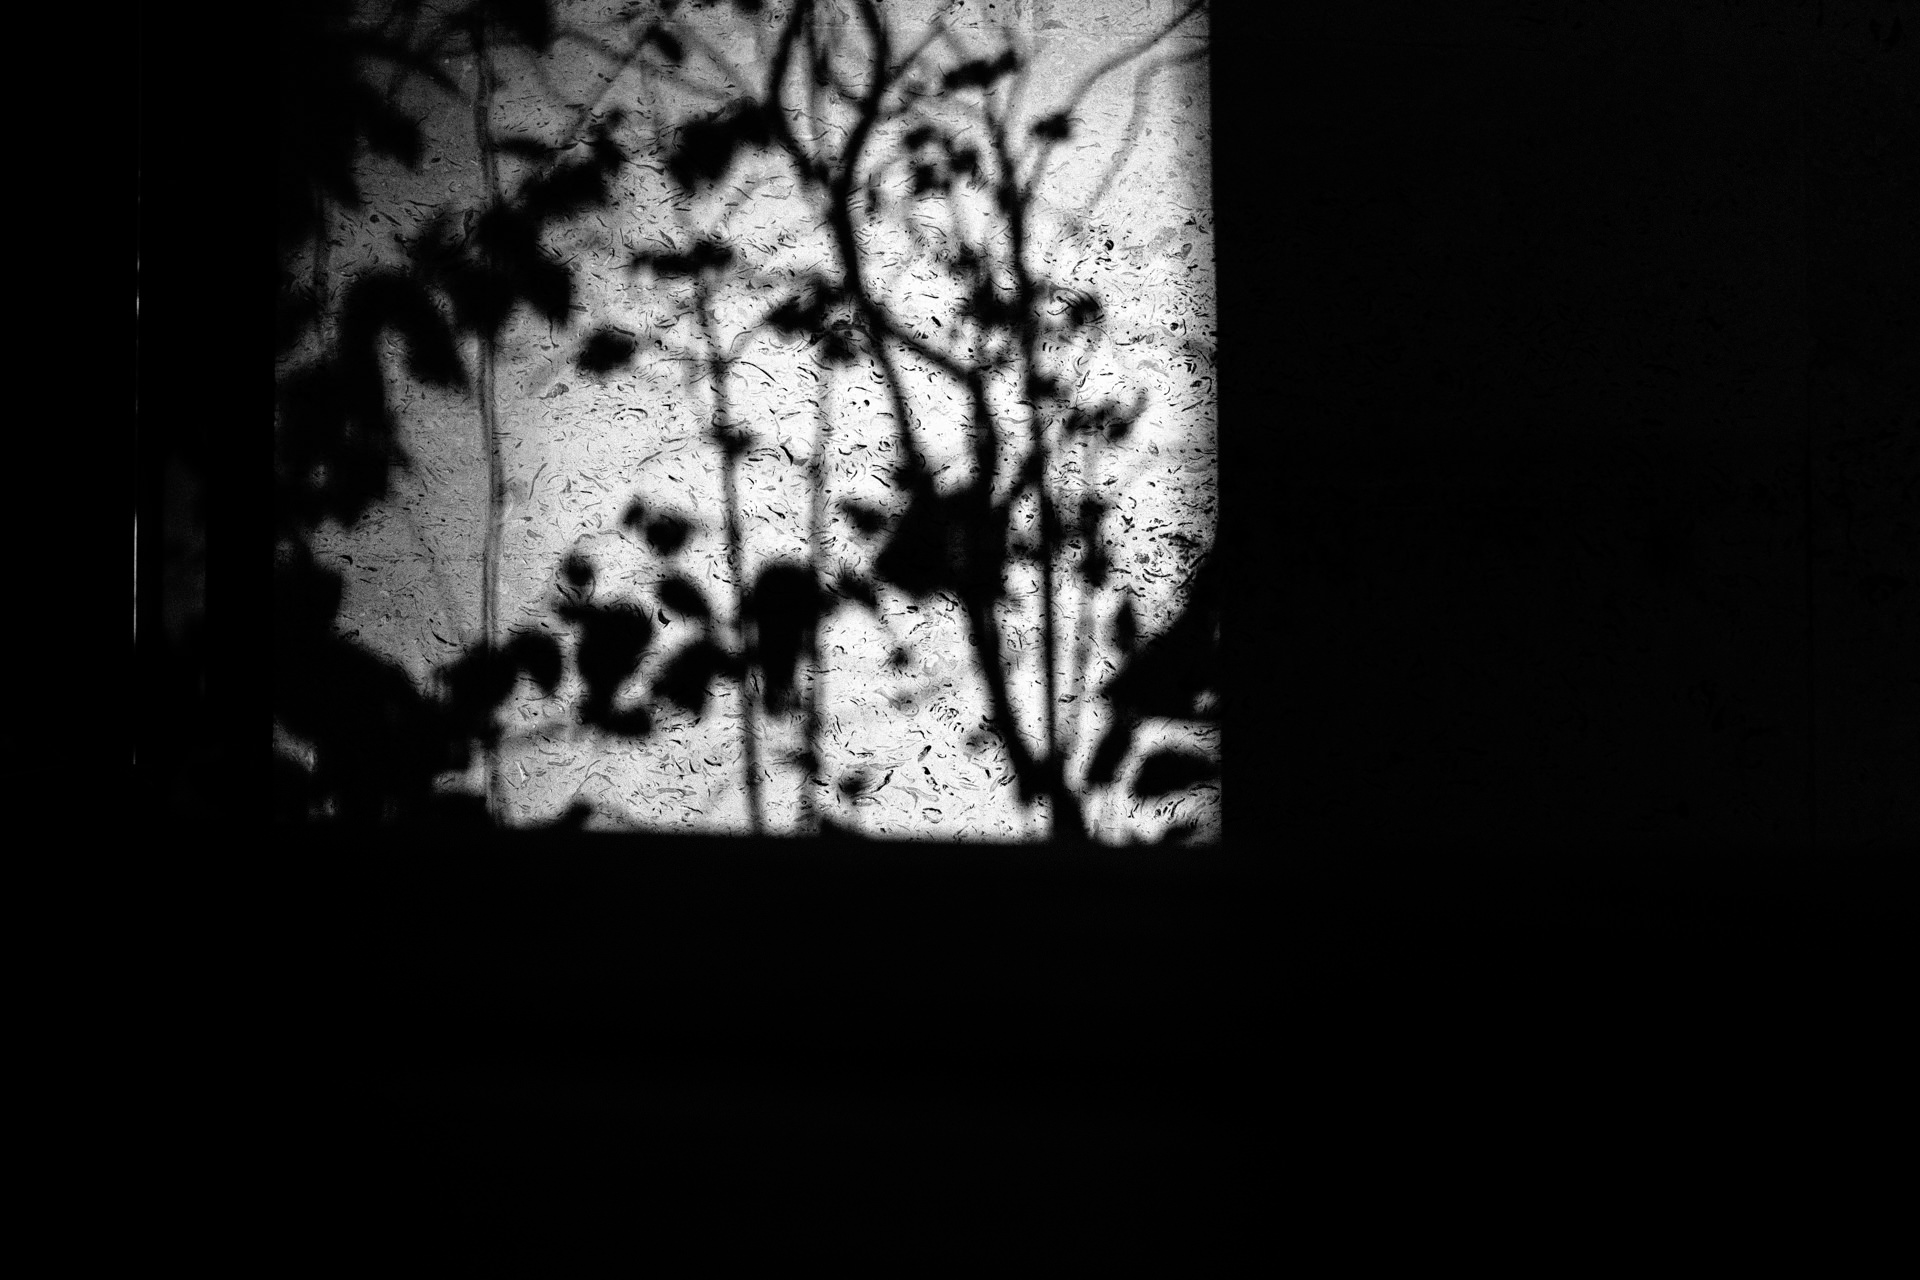 shadows of plant on the wall